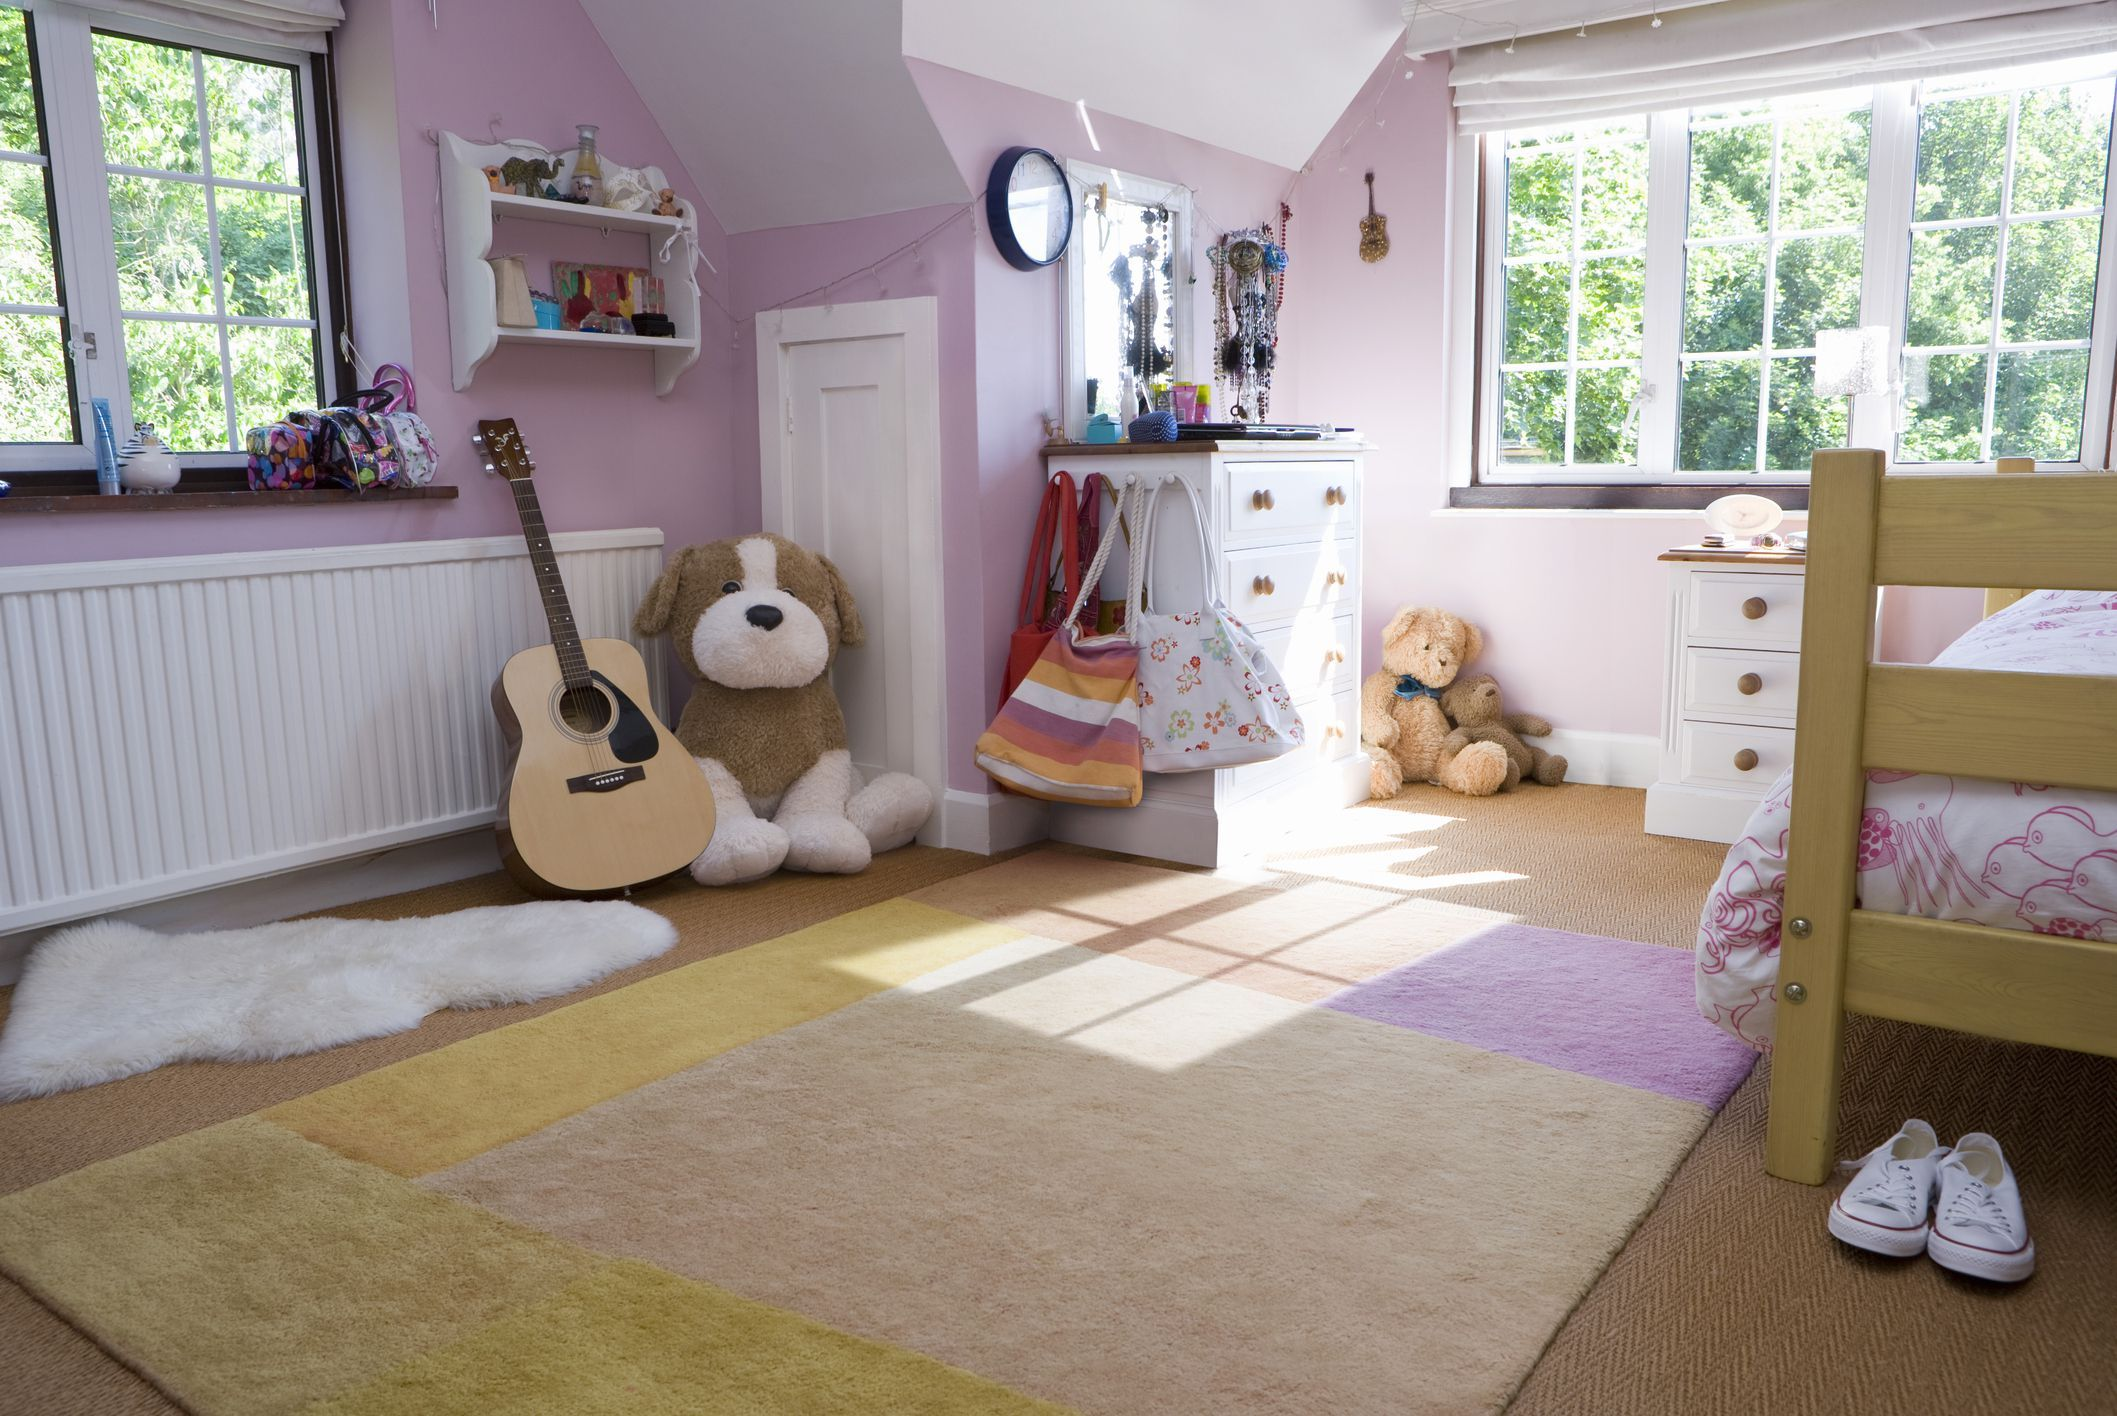 Discover the Best Flooring Options for a Kid's Bedroom